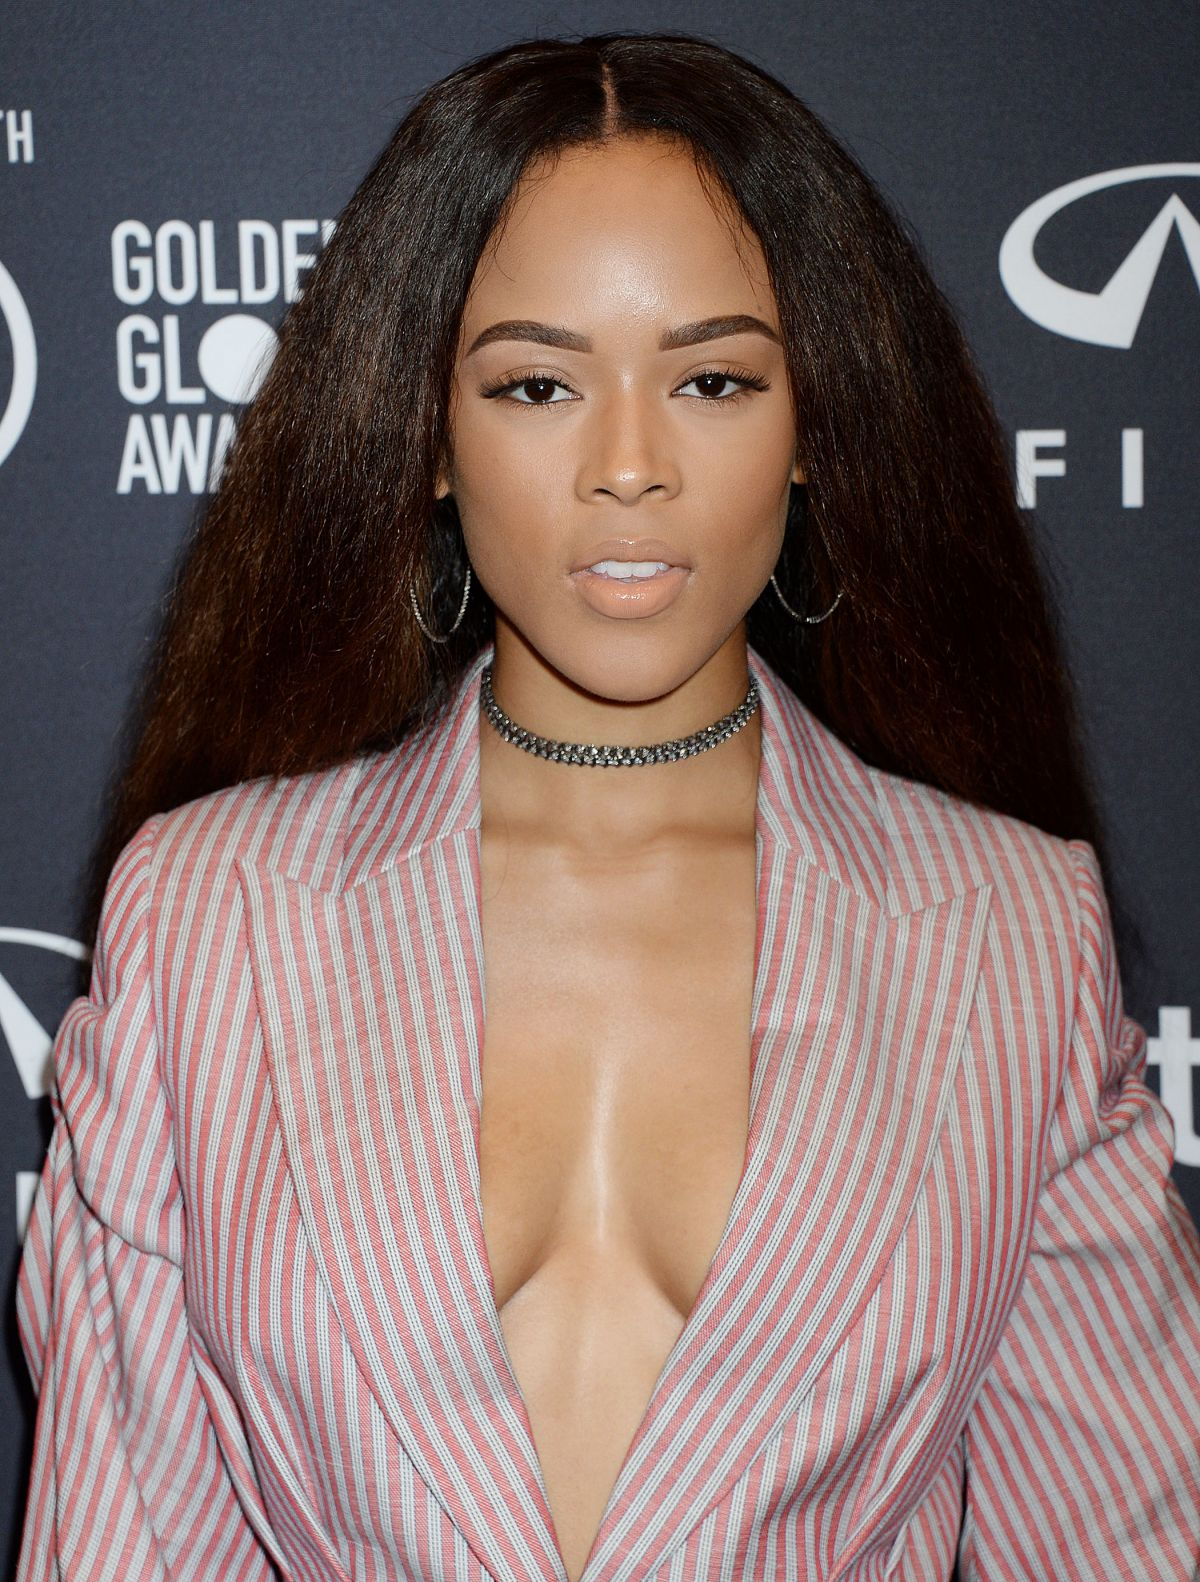 Pictures Serayah McNeill nude photos 2019